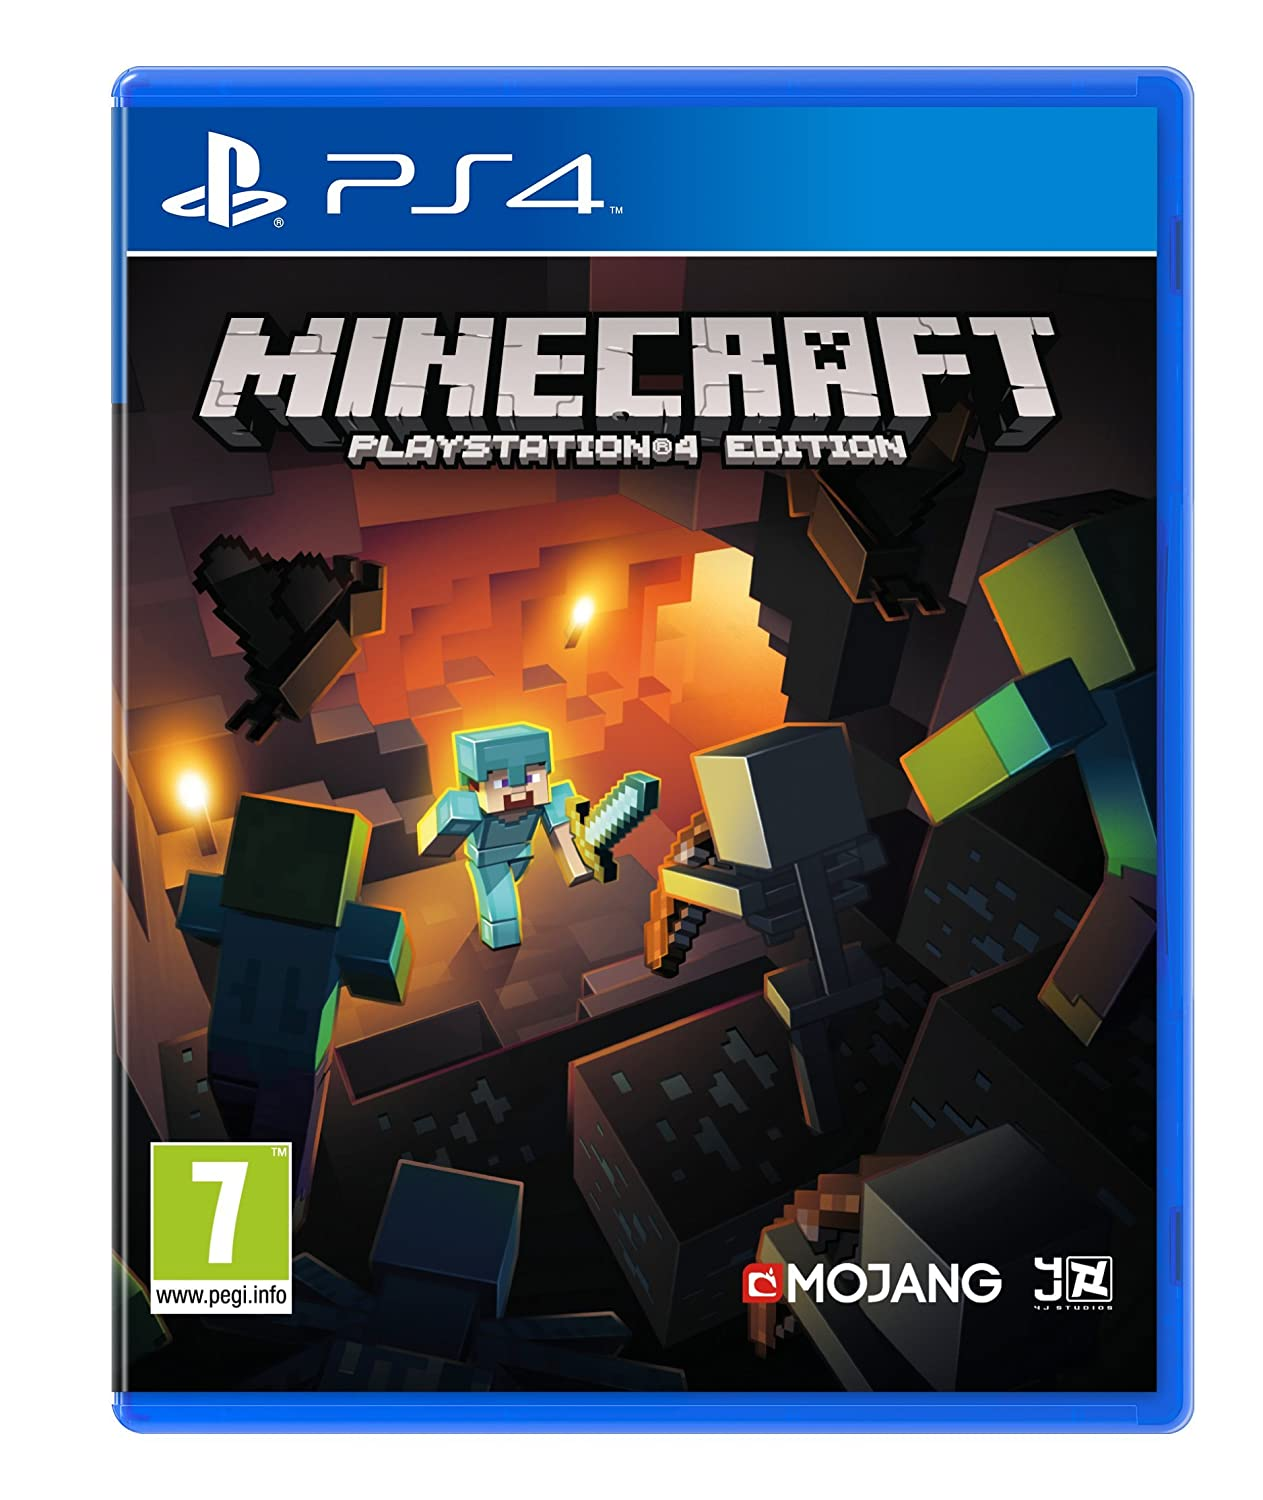 ps4 spiel minecraft playstation 4 edition neuware ebay. Black Bedroom Furniture Sets. Home Design Ideas